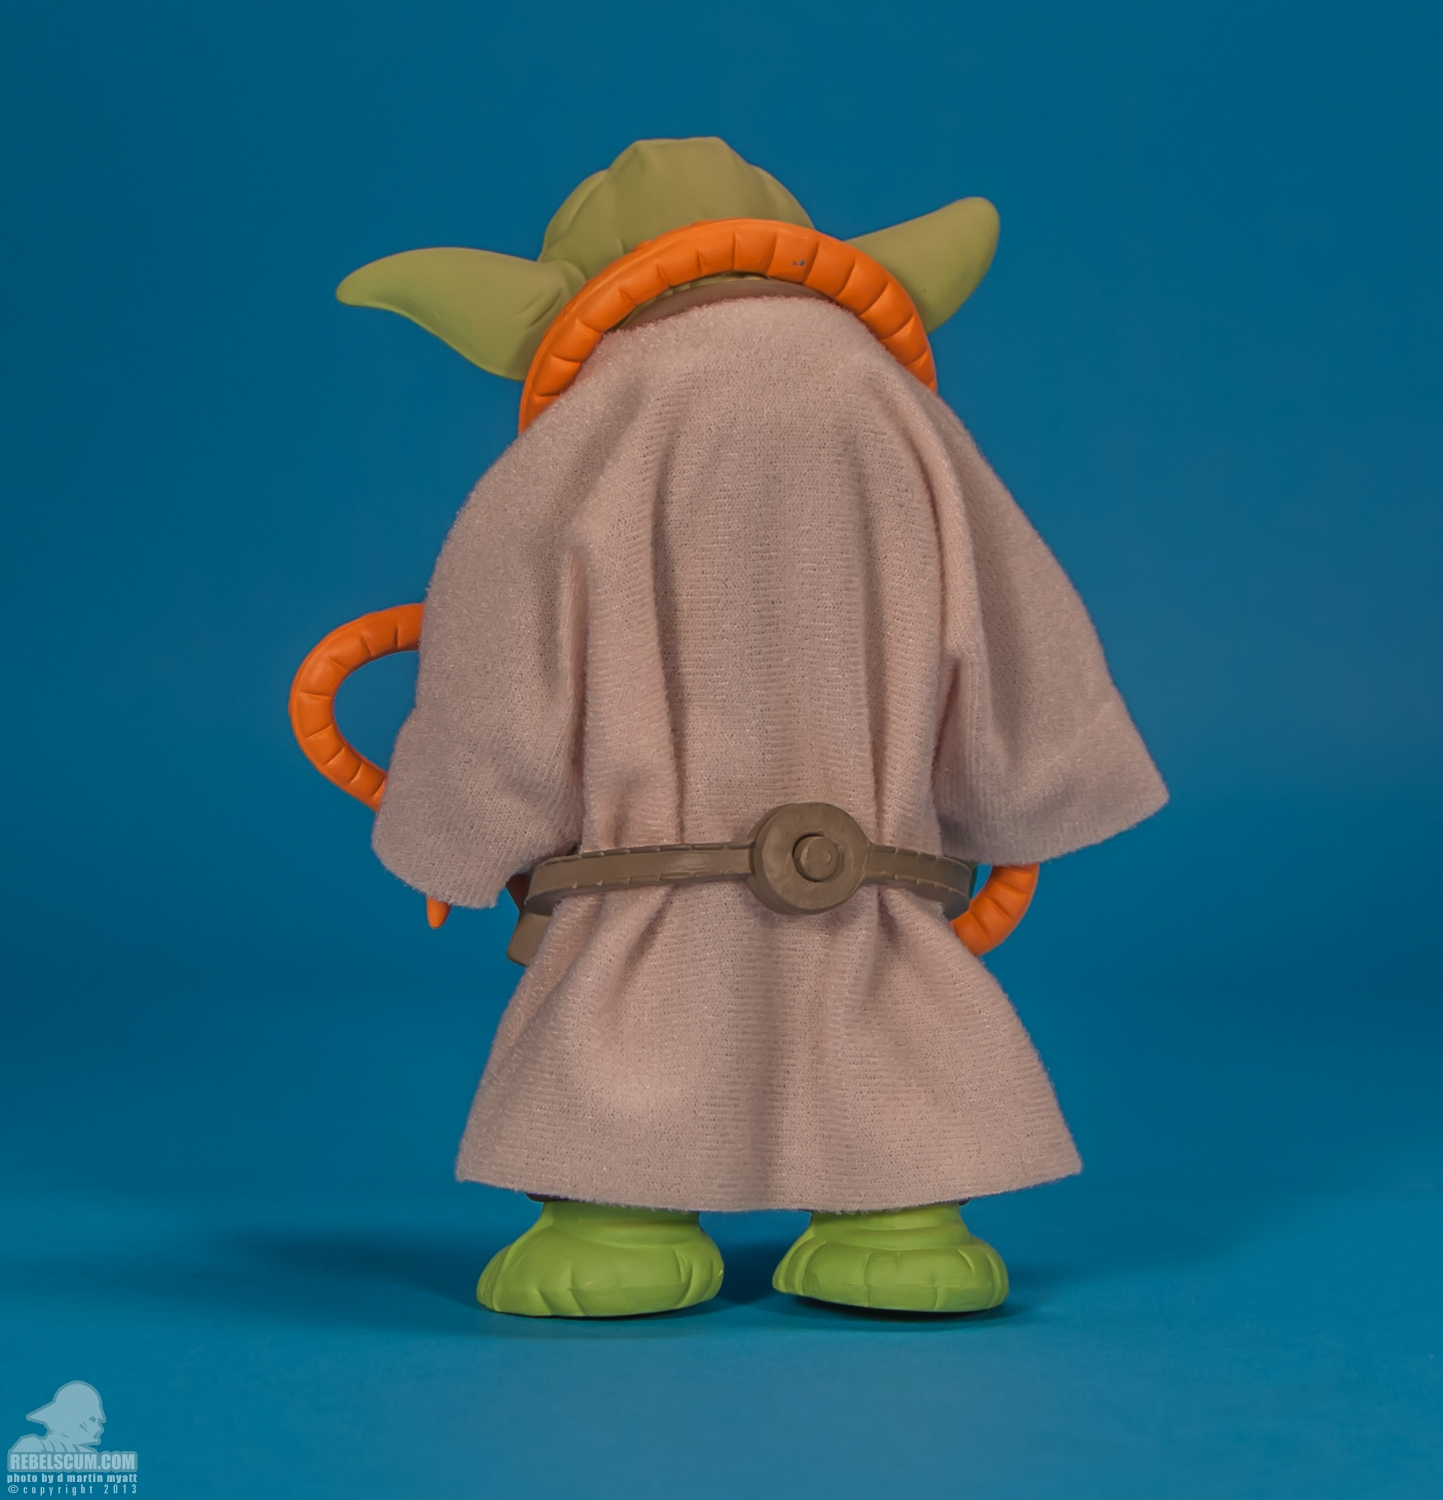 Yoda_Orange_Snake_Gentle_Giant_Kenner_Jumbo-04.jpg